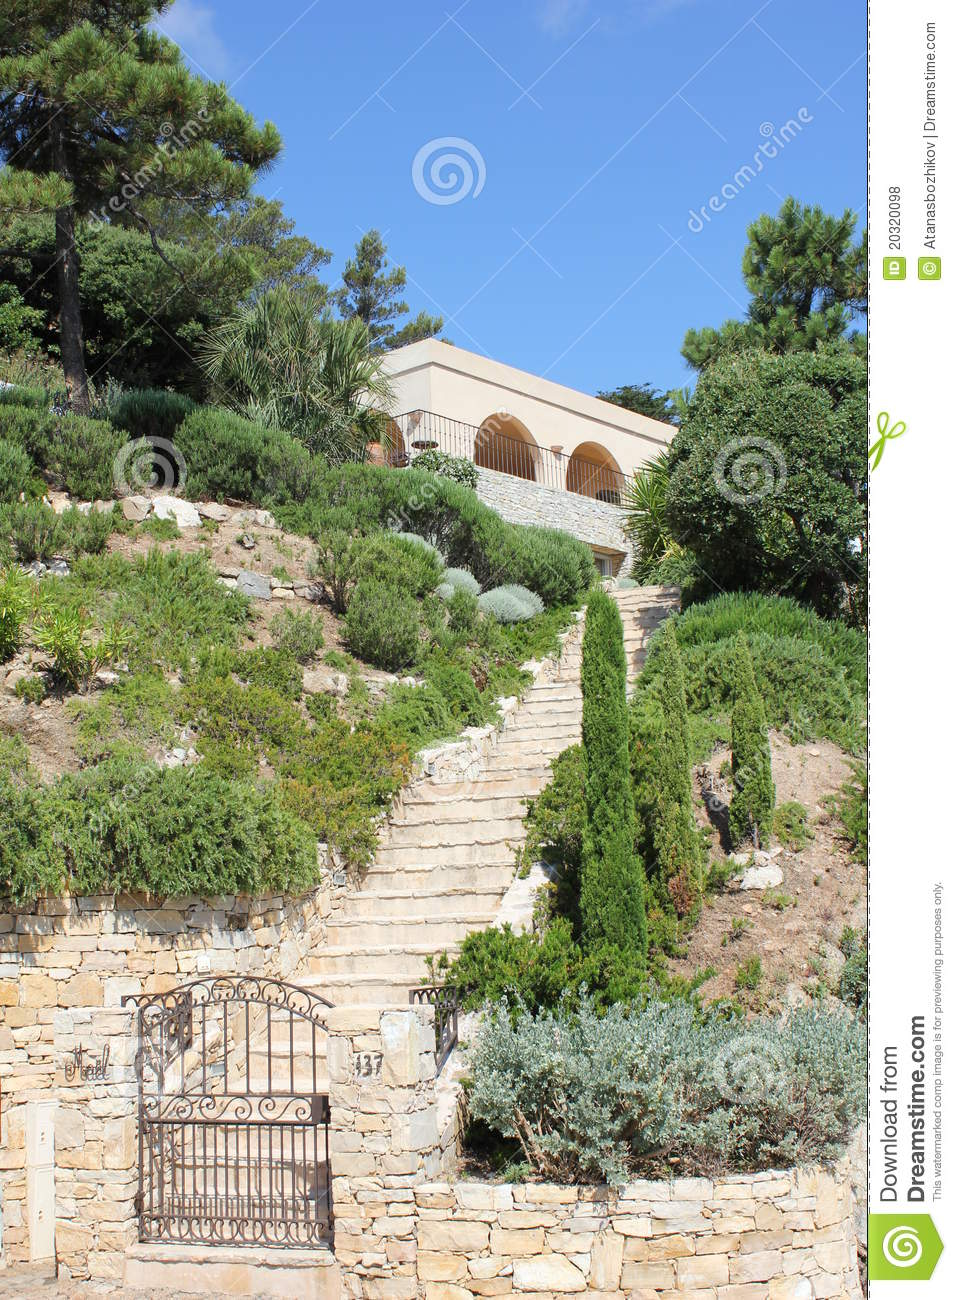 Download Villa In Bonne Terrase On The French Riviera Stock Photo - Image of nature, journey: 20320098